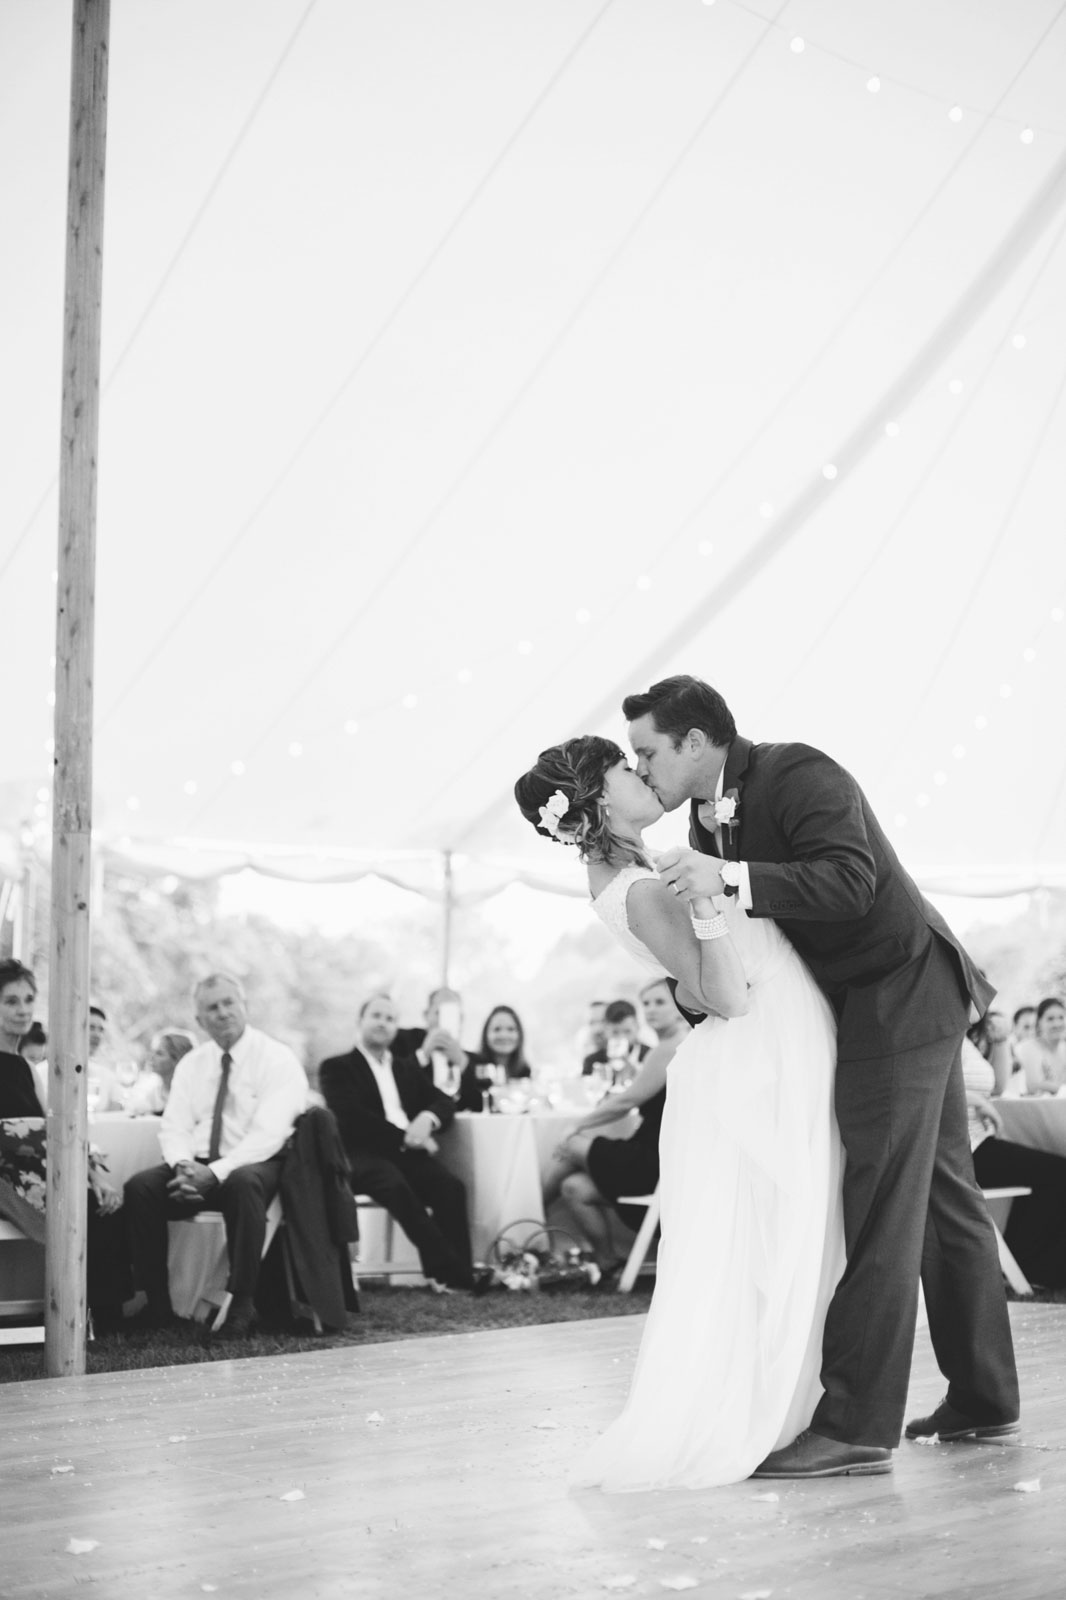 Bride and groom kiss as groom dips bride during first dance, romantic black and white